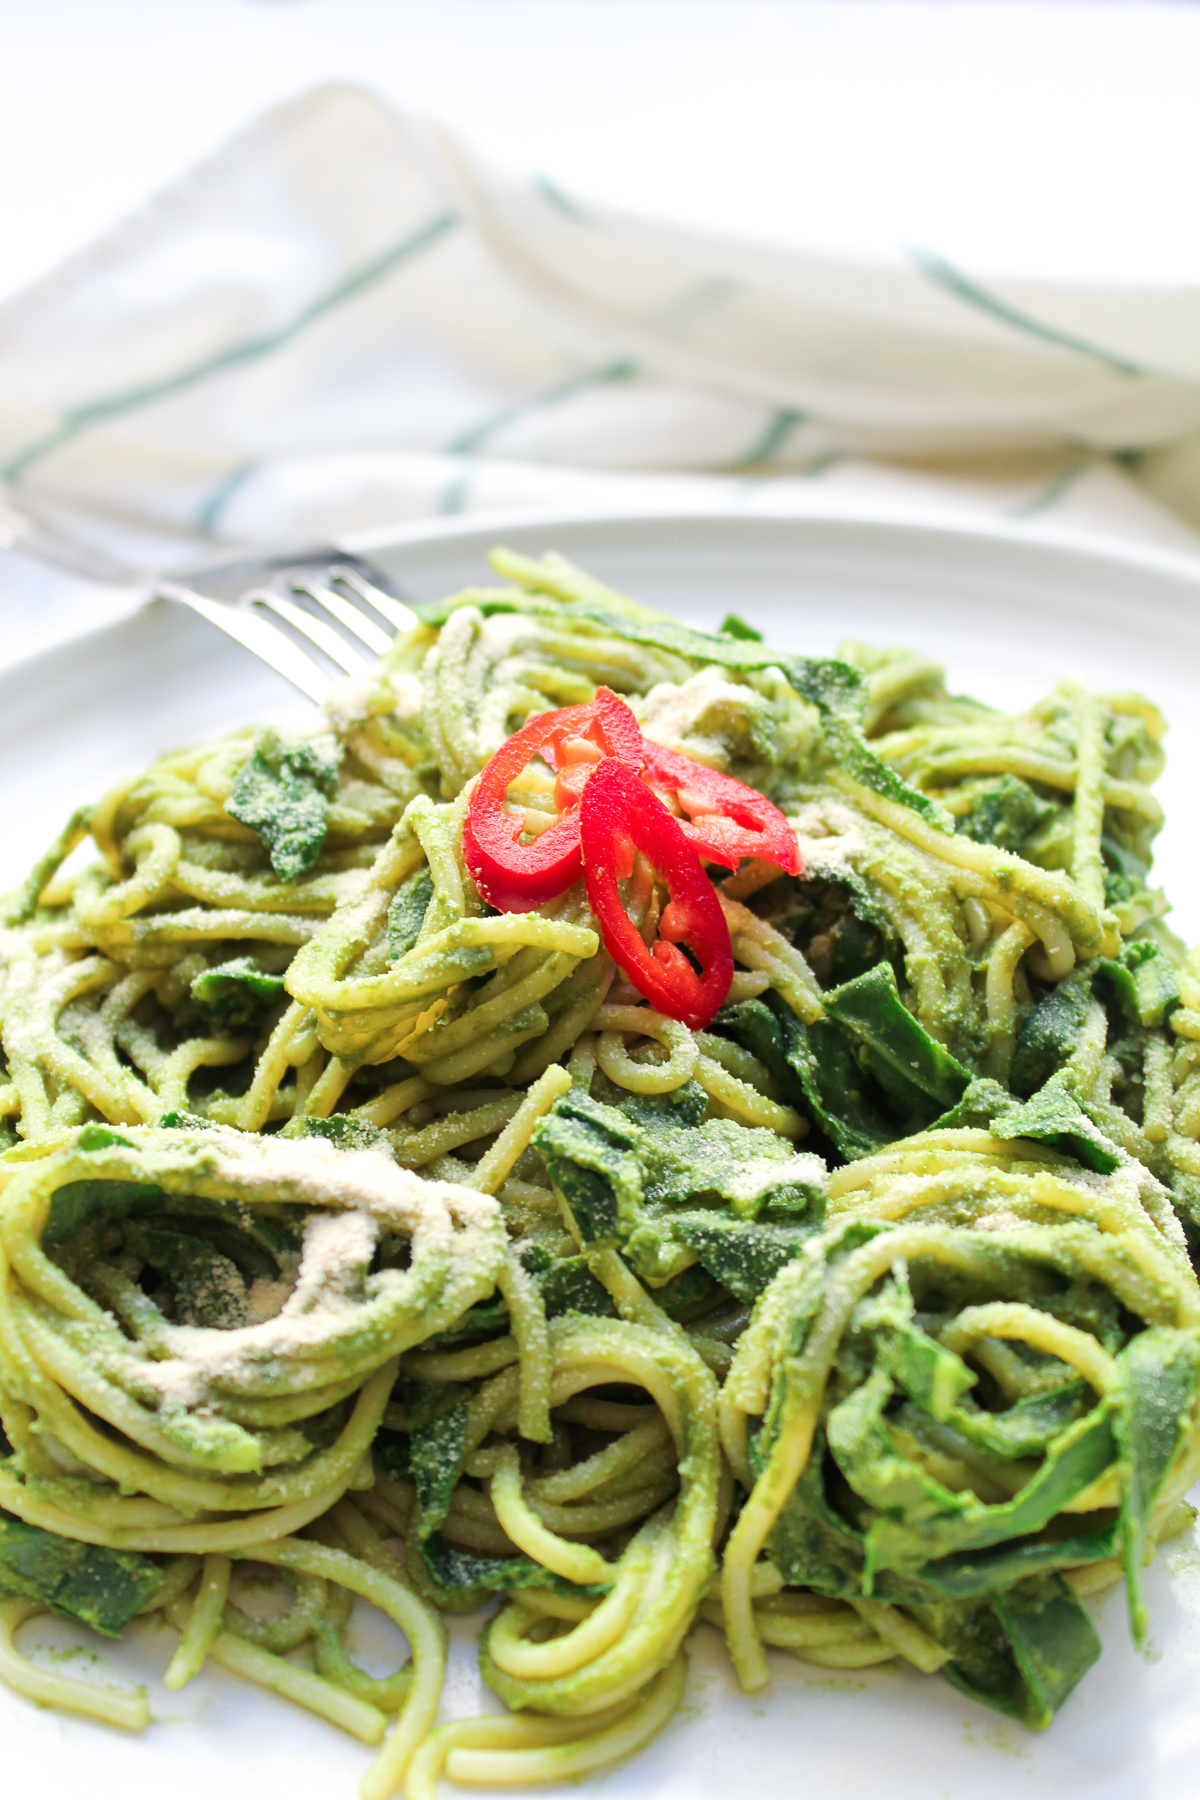 Creamy Vegan Pesto Avocado Pasta With Collard Greens